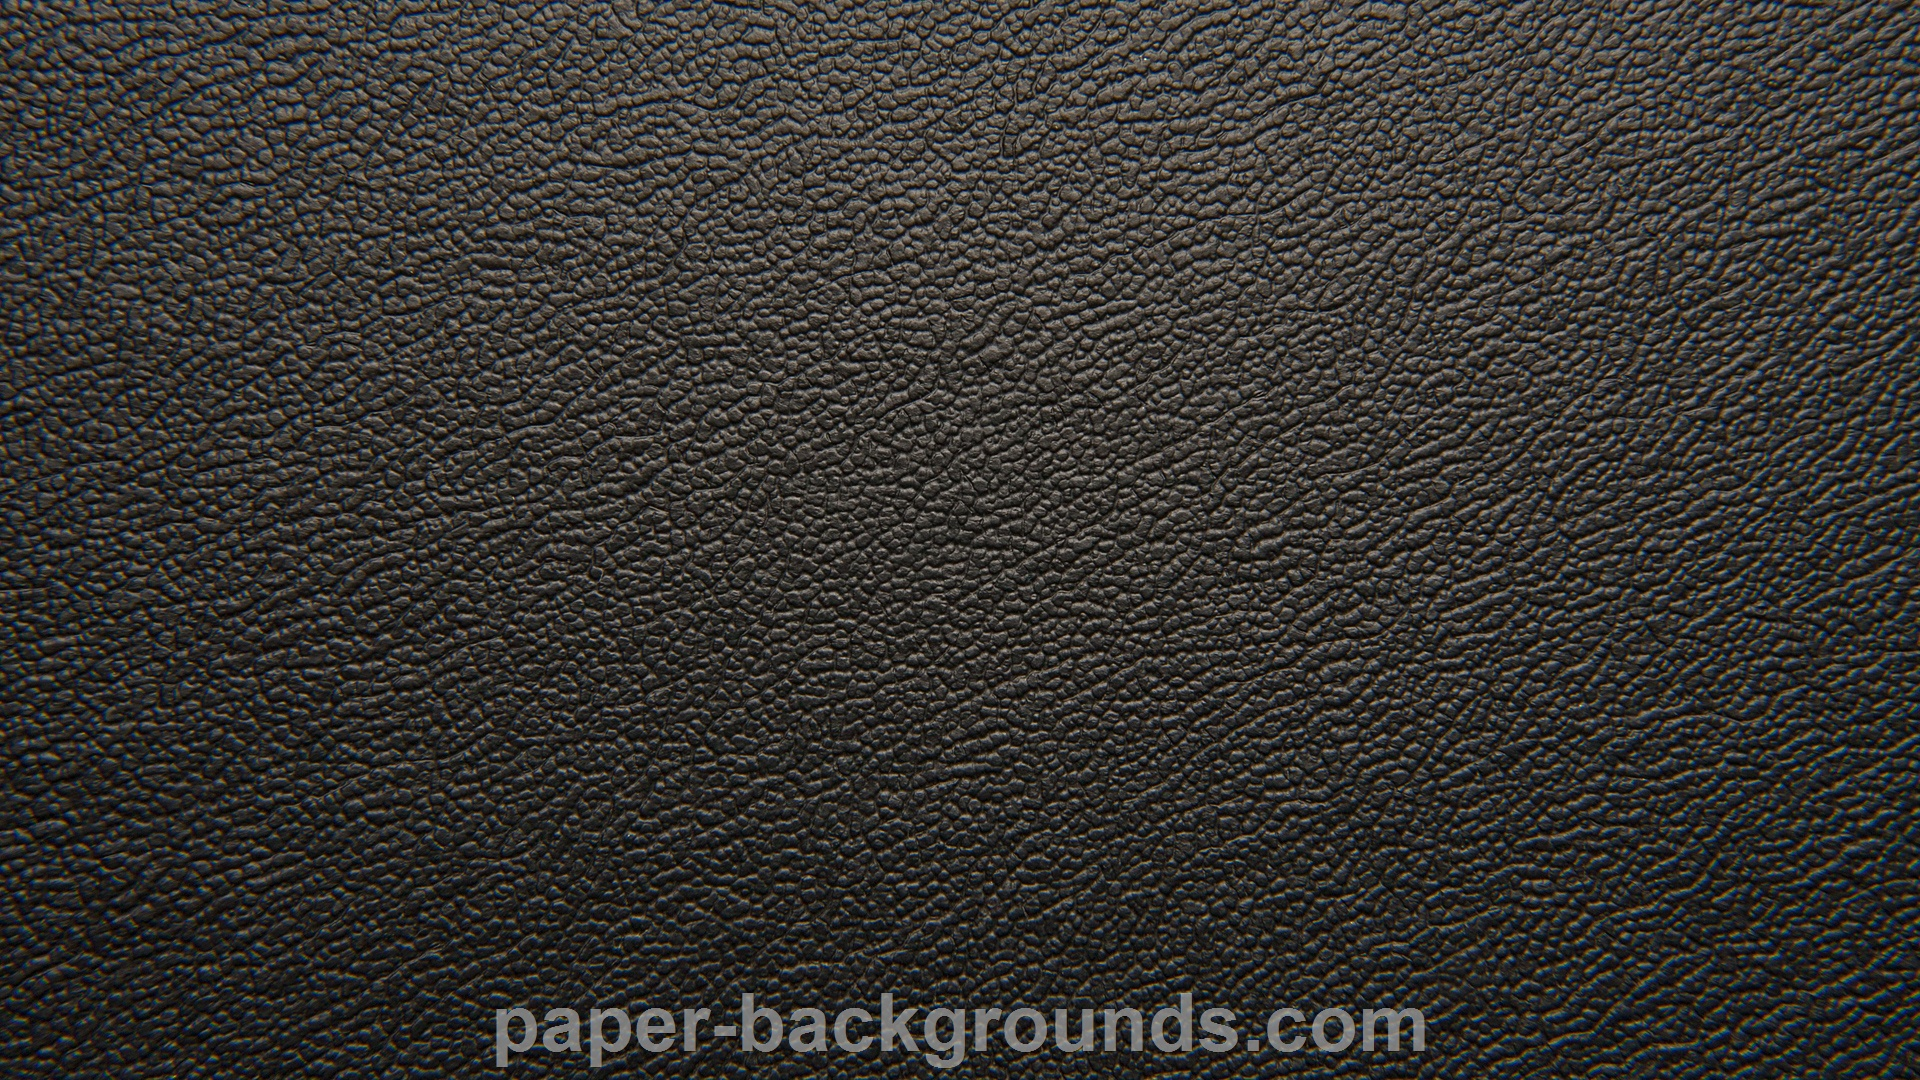 Black leather wallpaper 1920x1080 black leather